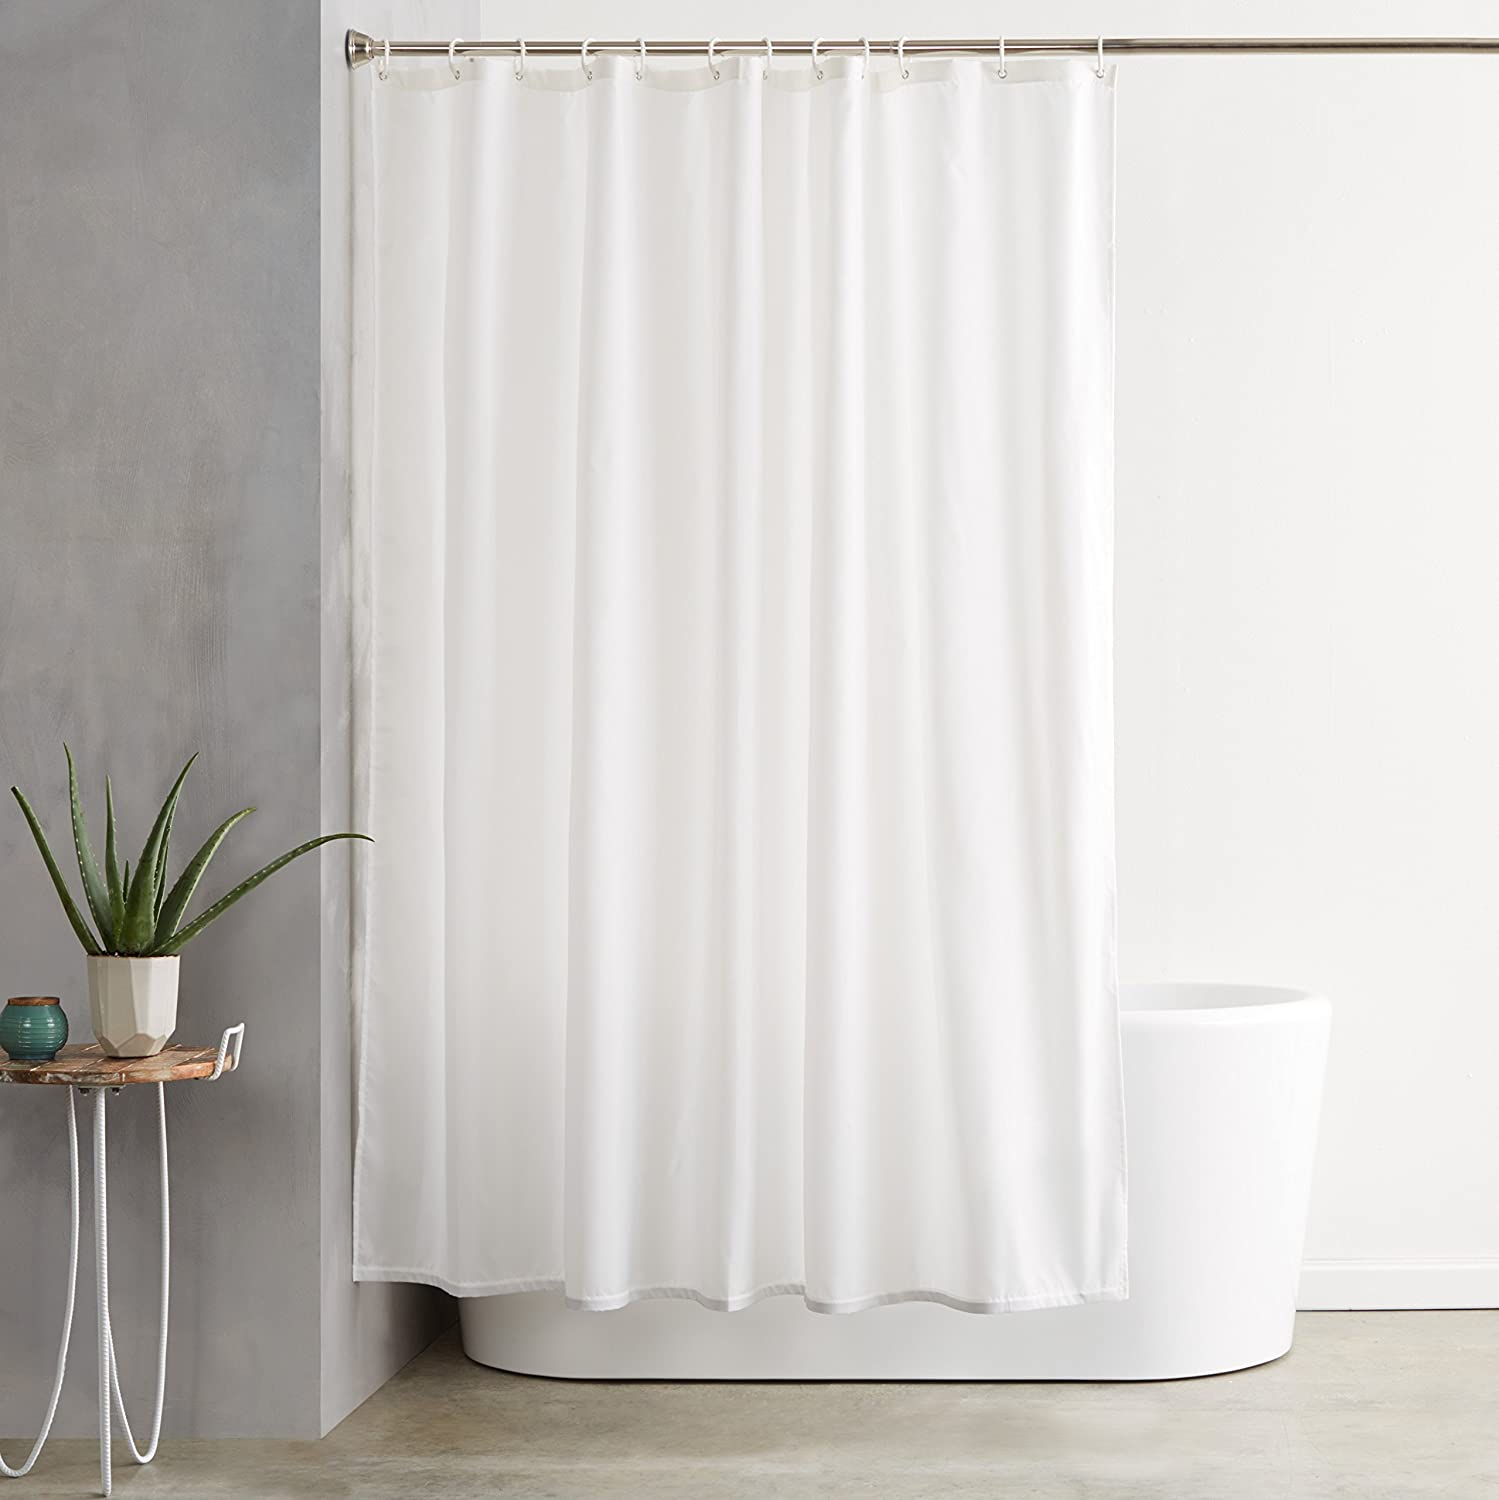 Good Quality Shower Curtains Uk  Integralbook.com